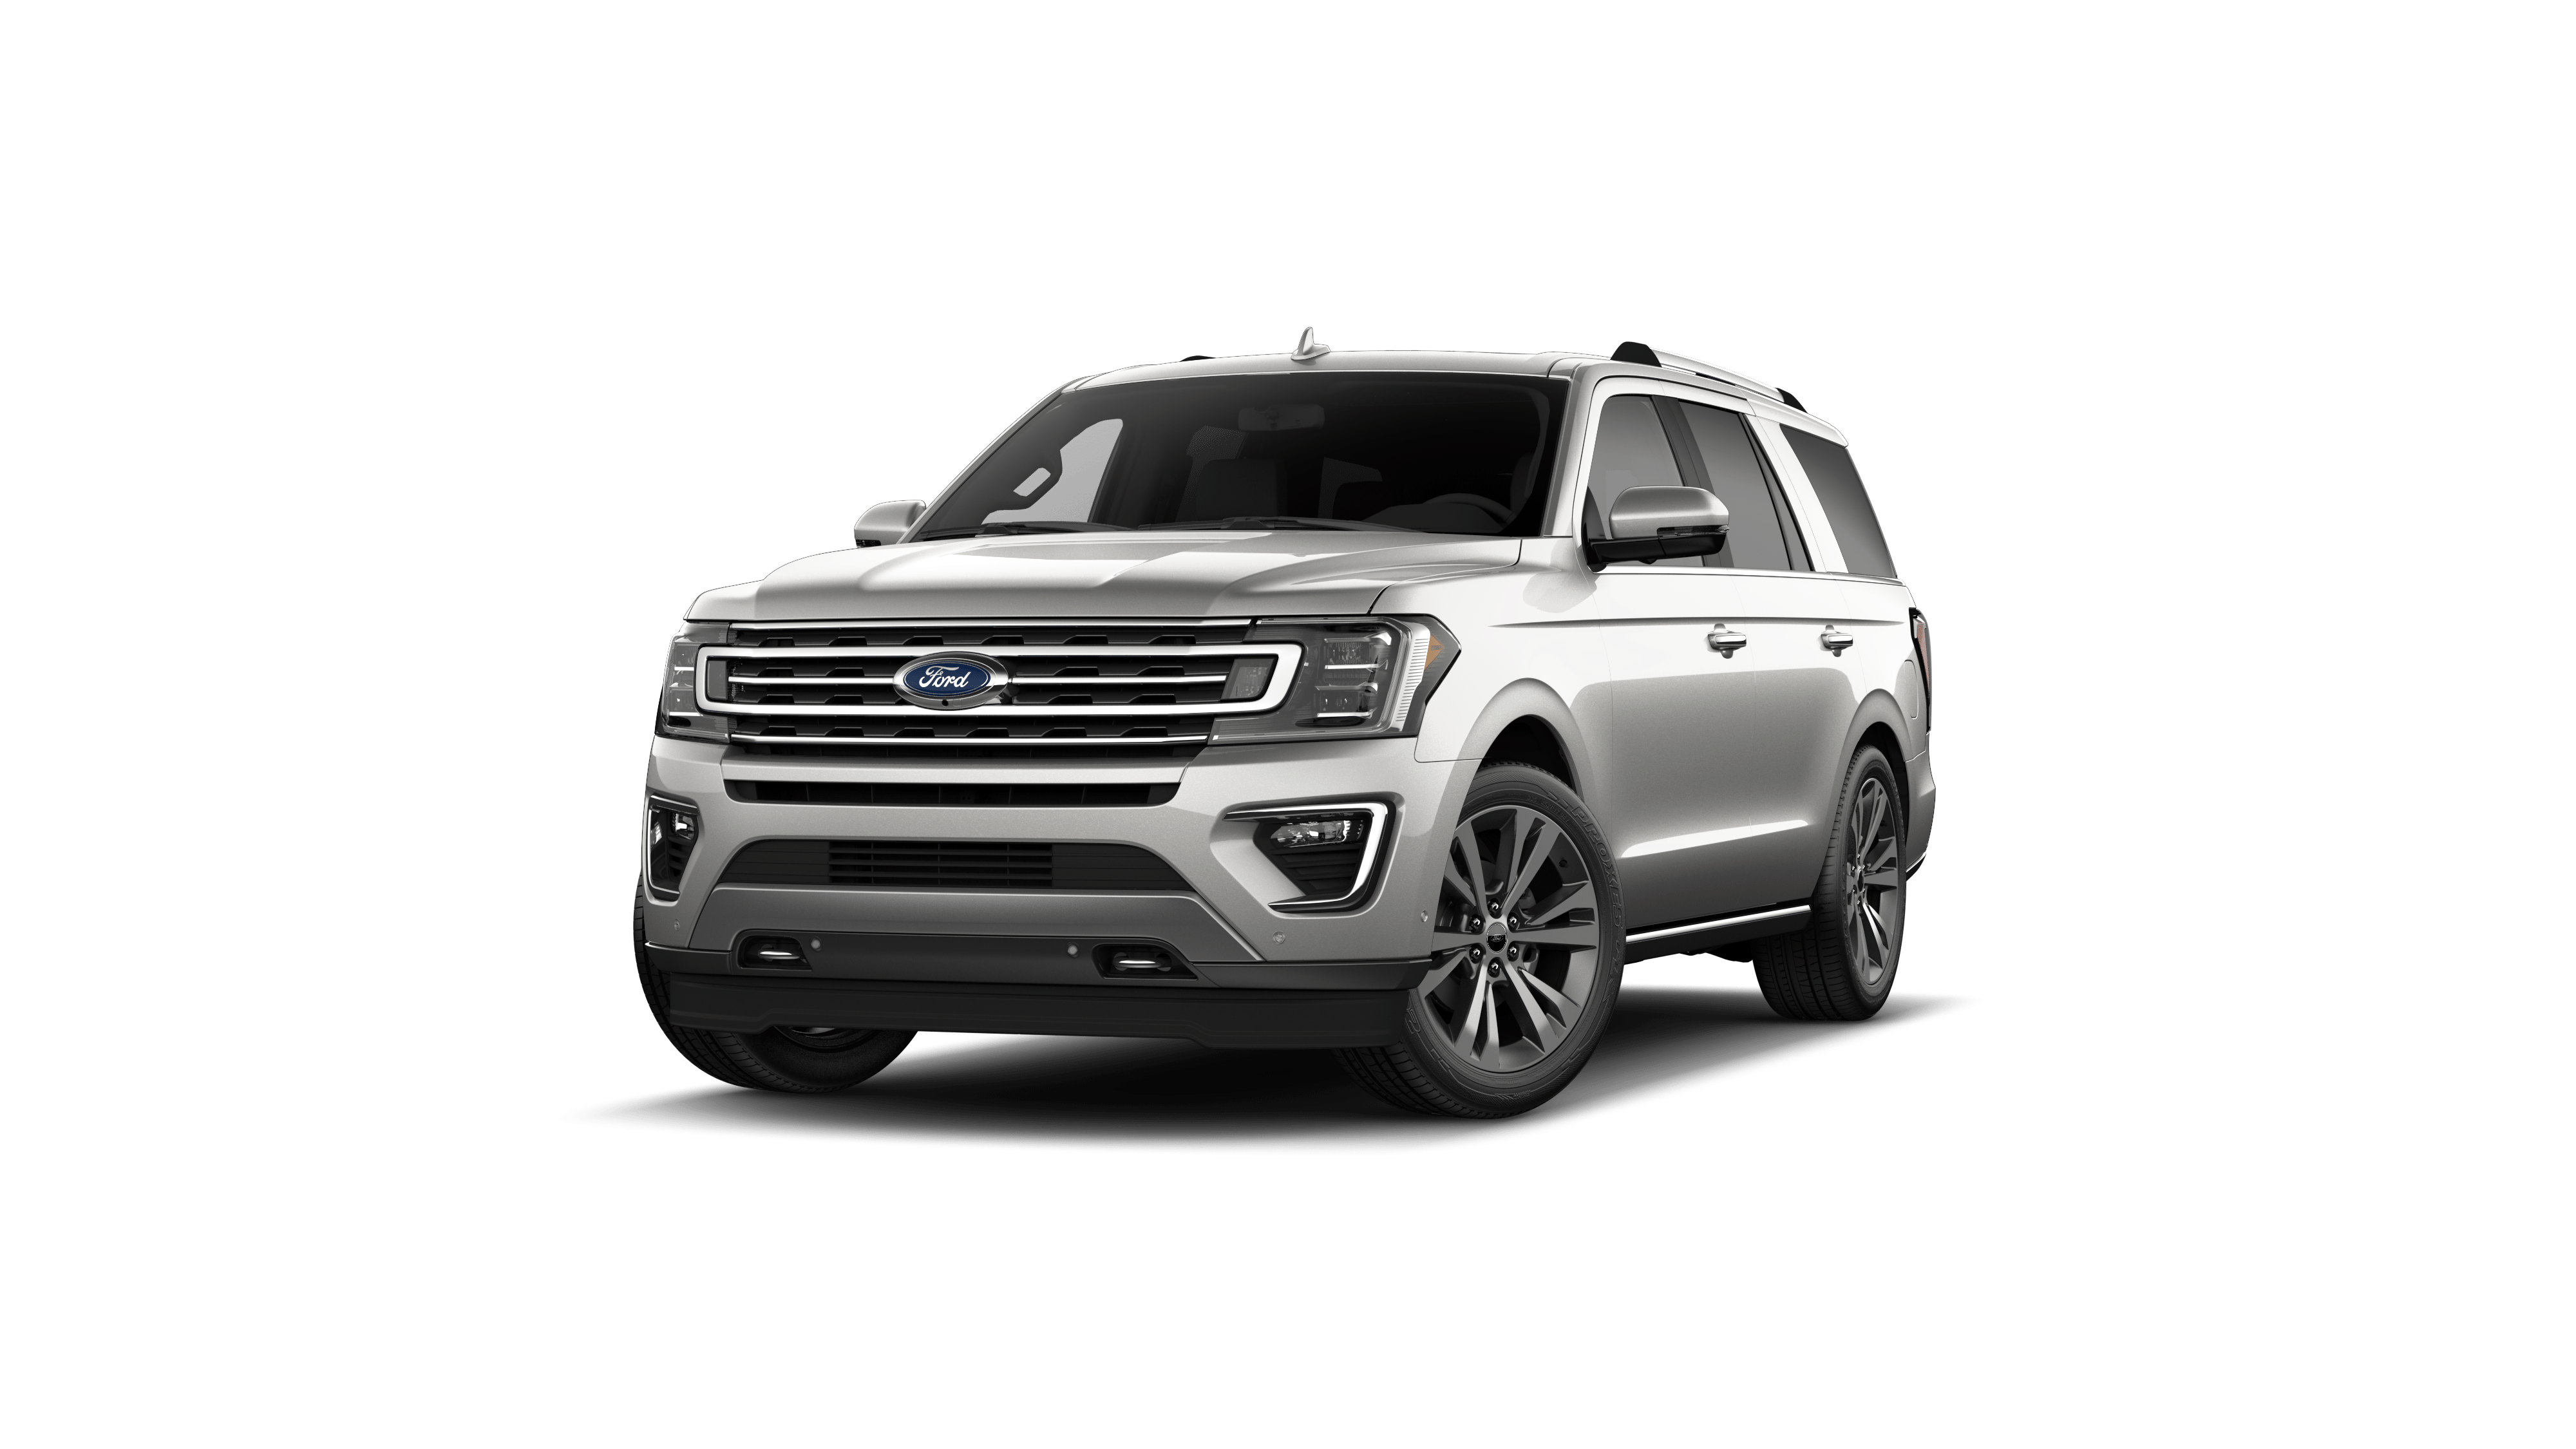 2020 Ford Expedition Vehicle Photo in Souderton, PA 18964-1038